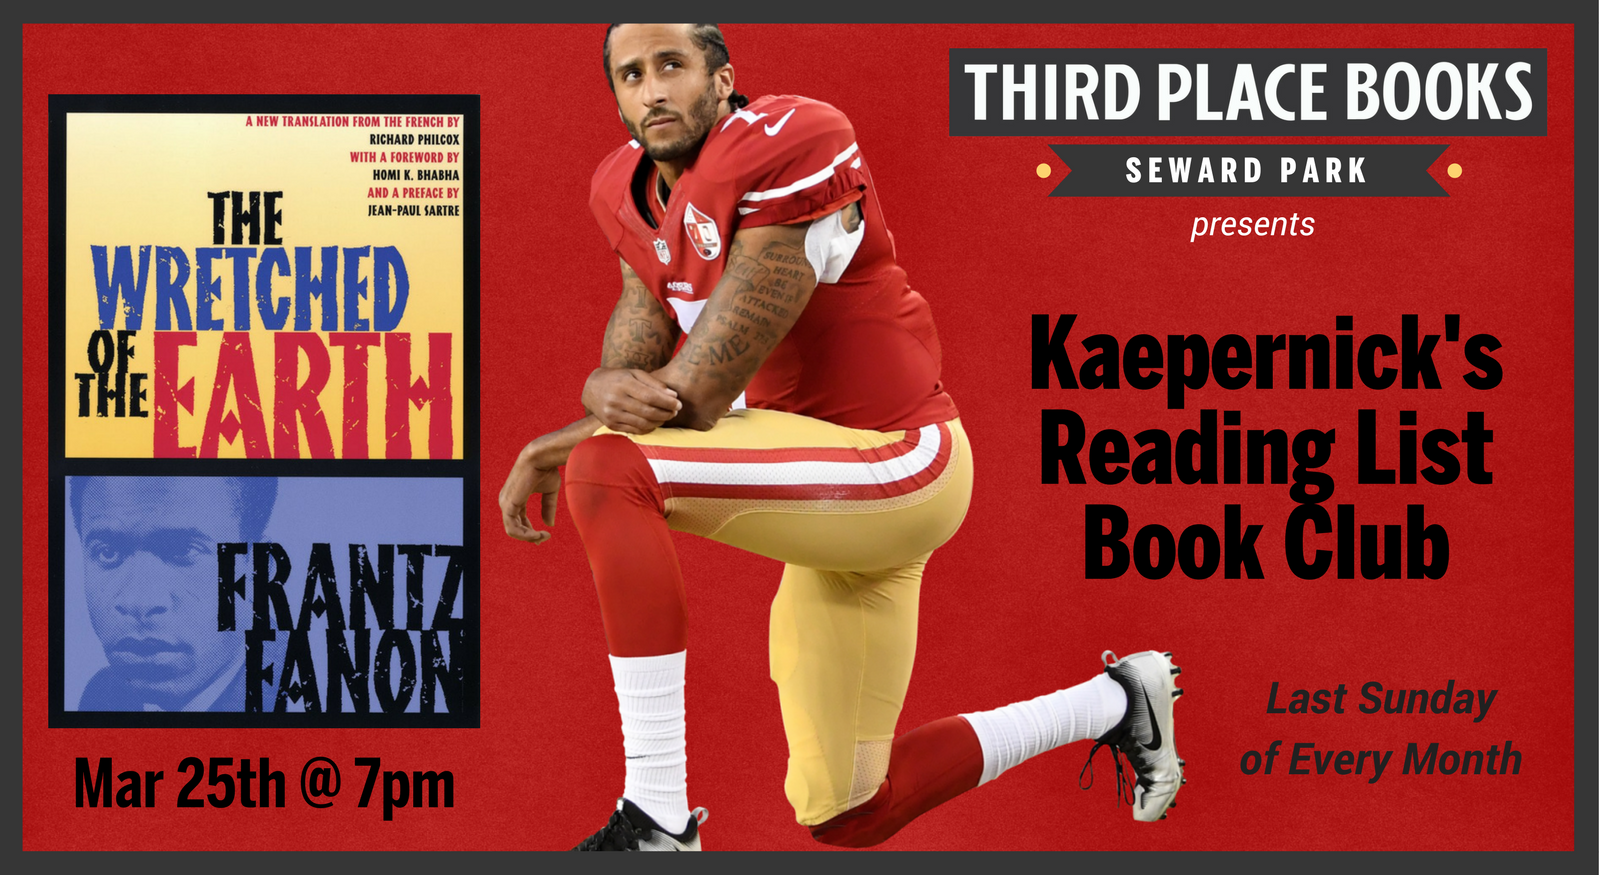 Kaepernick's Reading List Book Club - The Wretched of the Earth